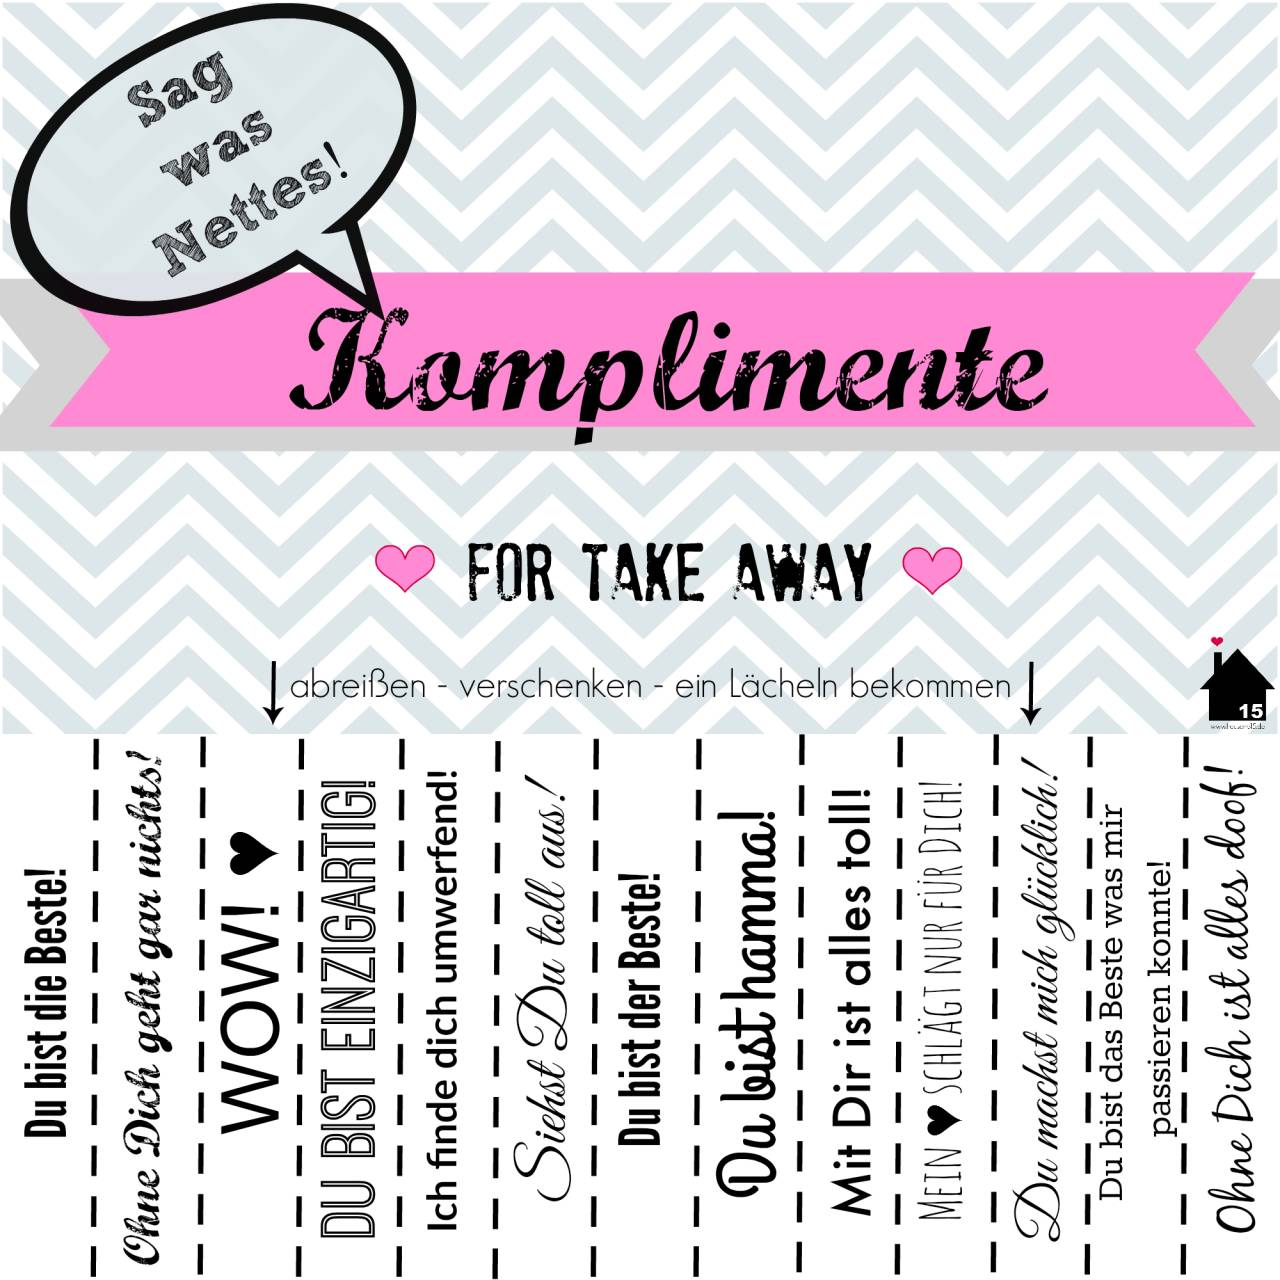 Komplimente for take away_4